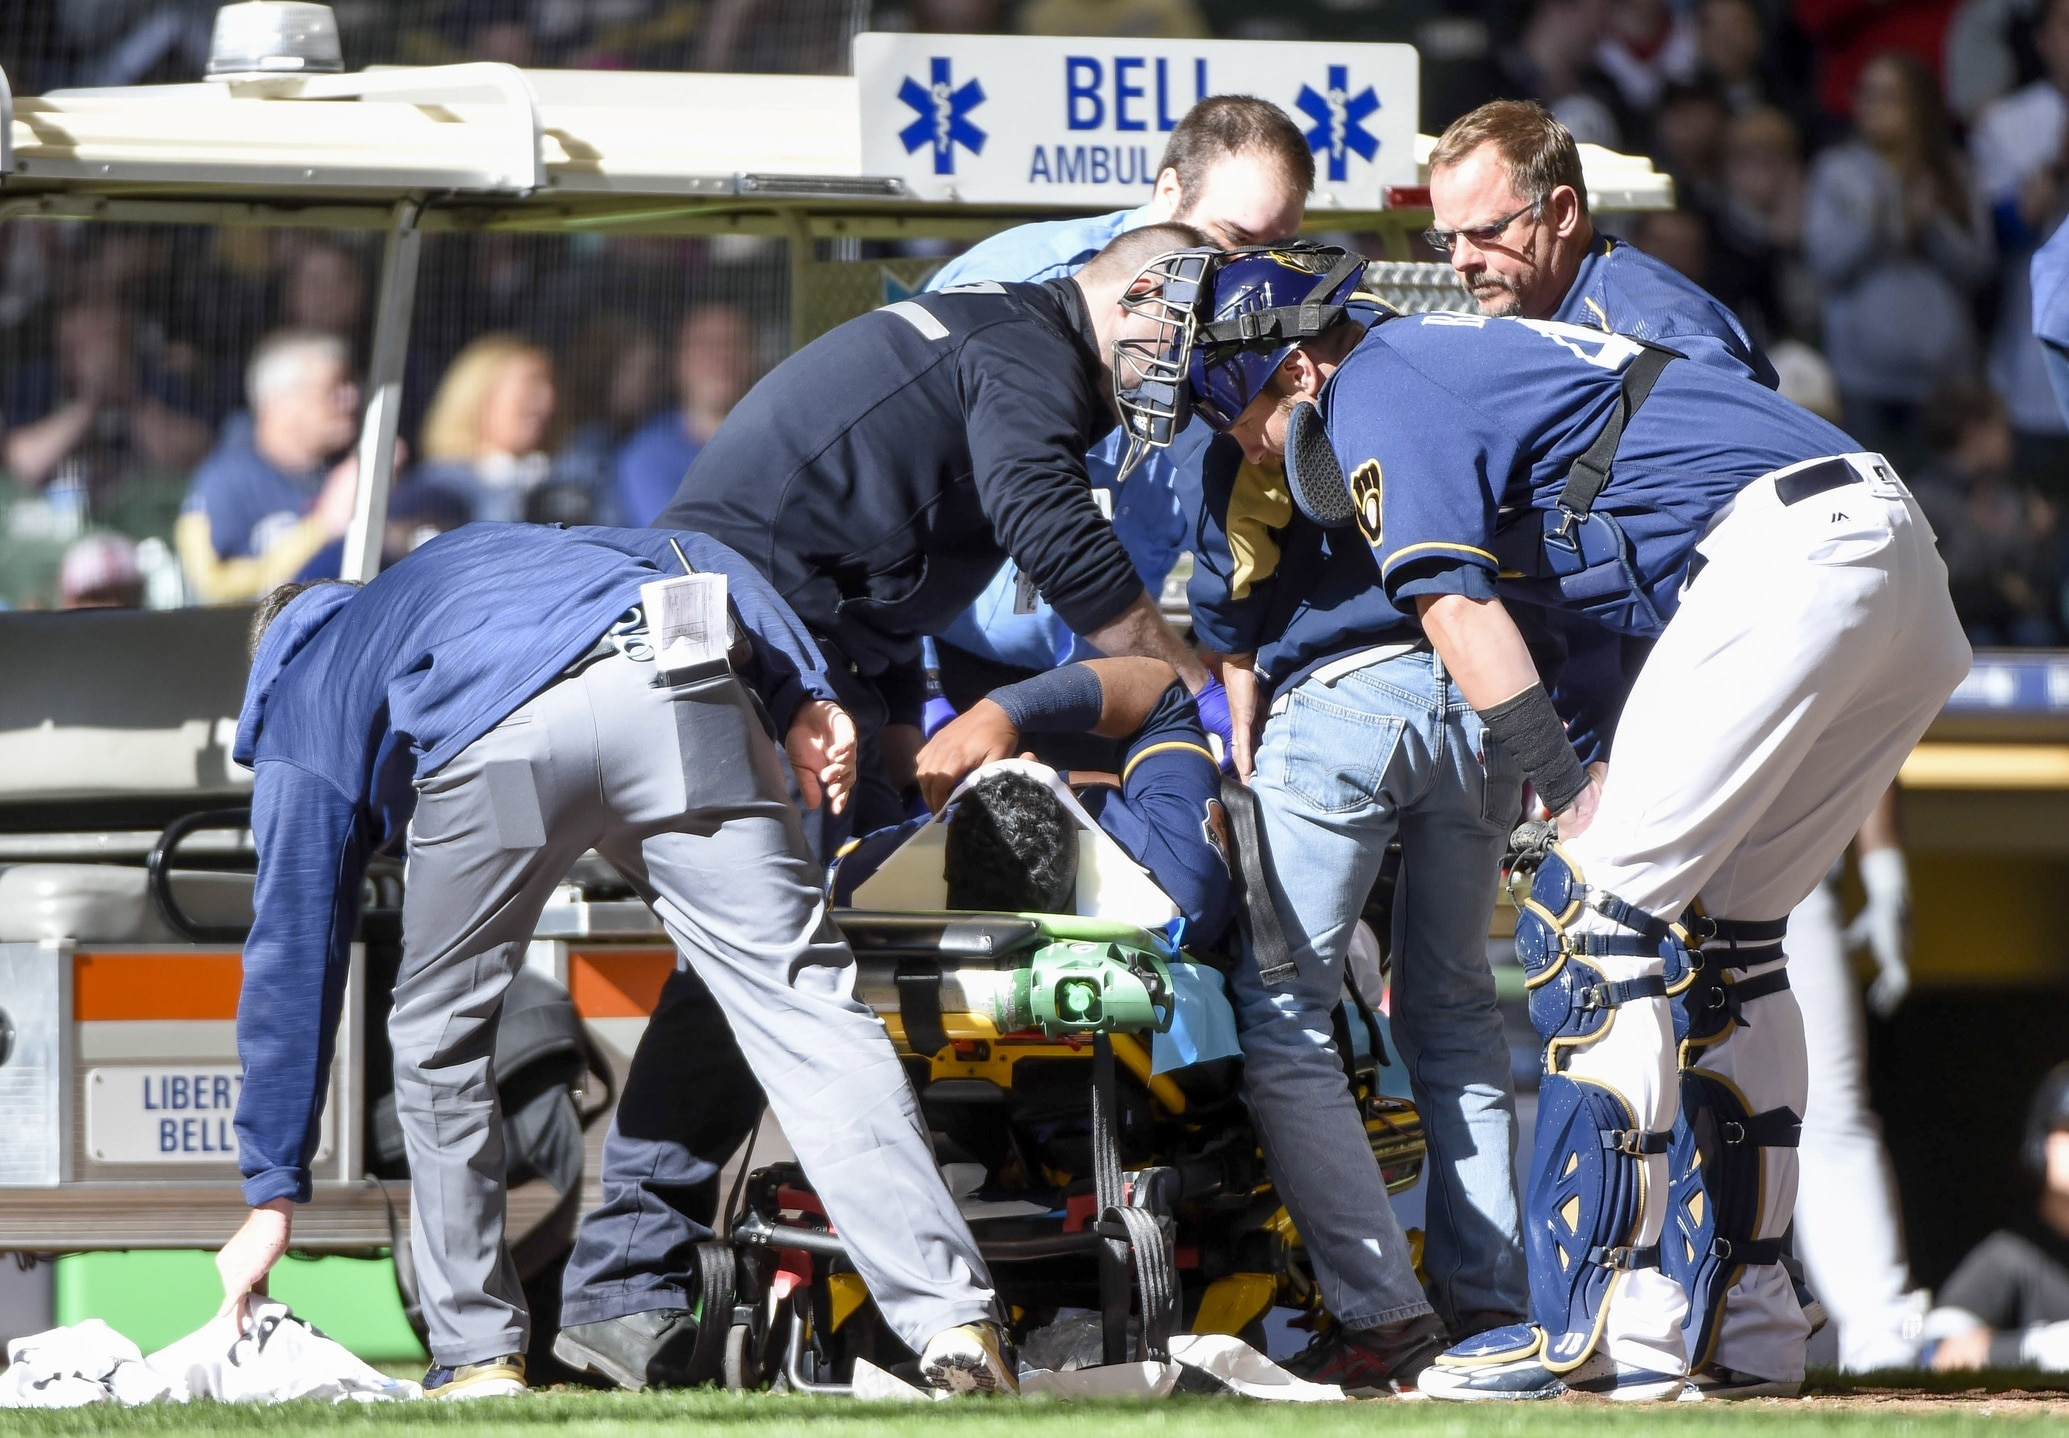 Apr 1, 2017; Milwaukee, WI, USA; Milwaukee Brewers catcher Jett Bandy (47) checks on Rene Garcia after Garcia was injured in the ninth inning during the game against the Chicago White Sox and had to be carted off the field at Miller Park. Mandatory Credit: Benny Sieu-USA TODAY Sports